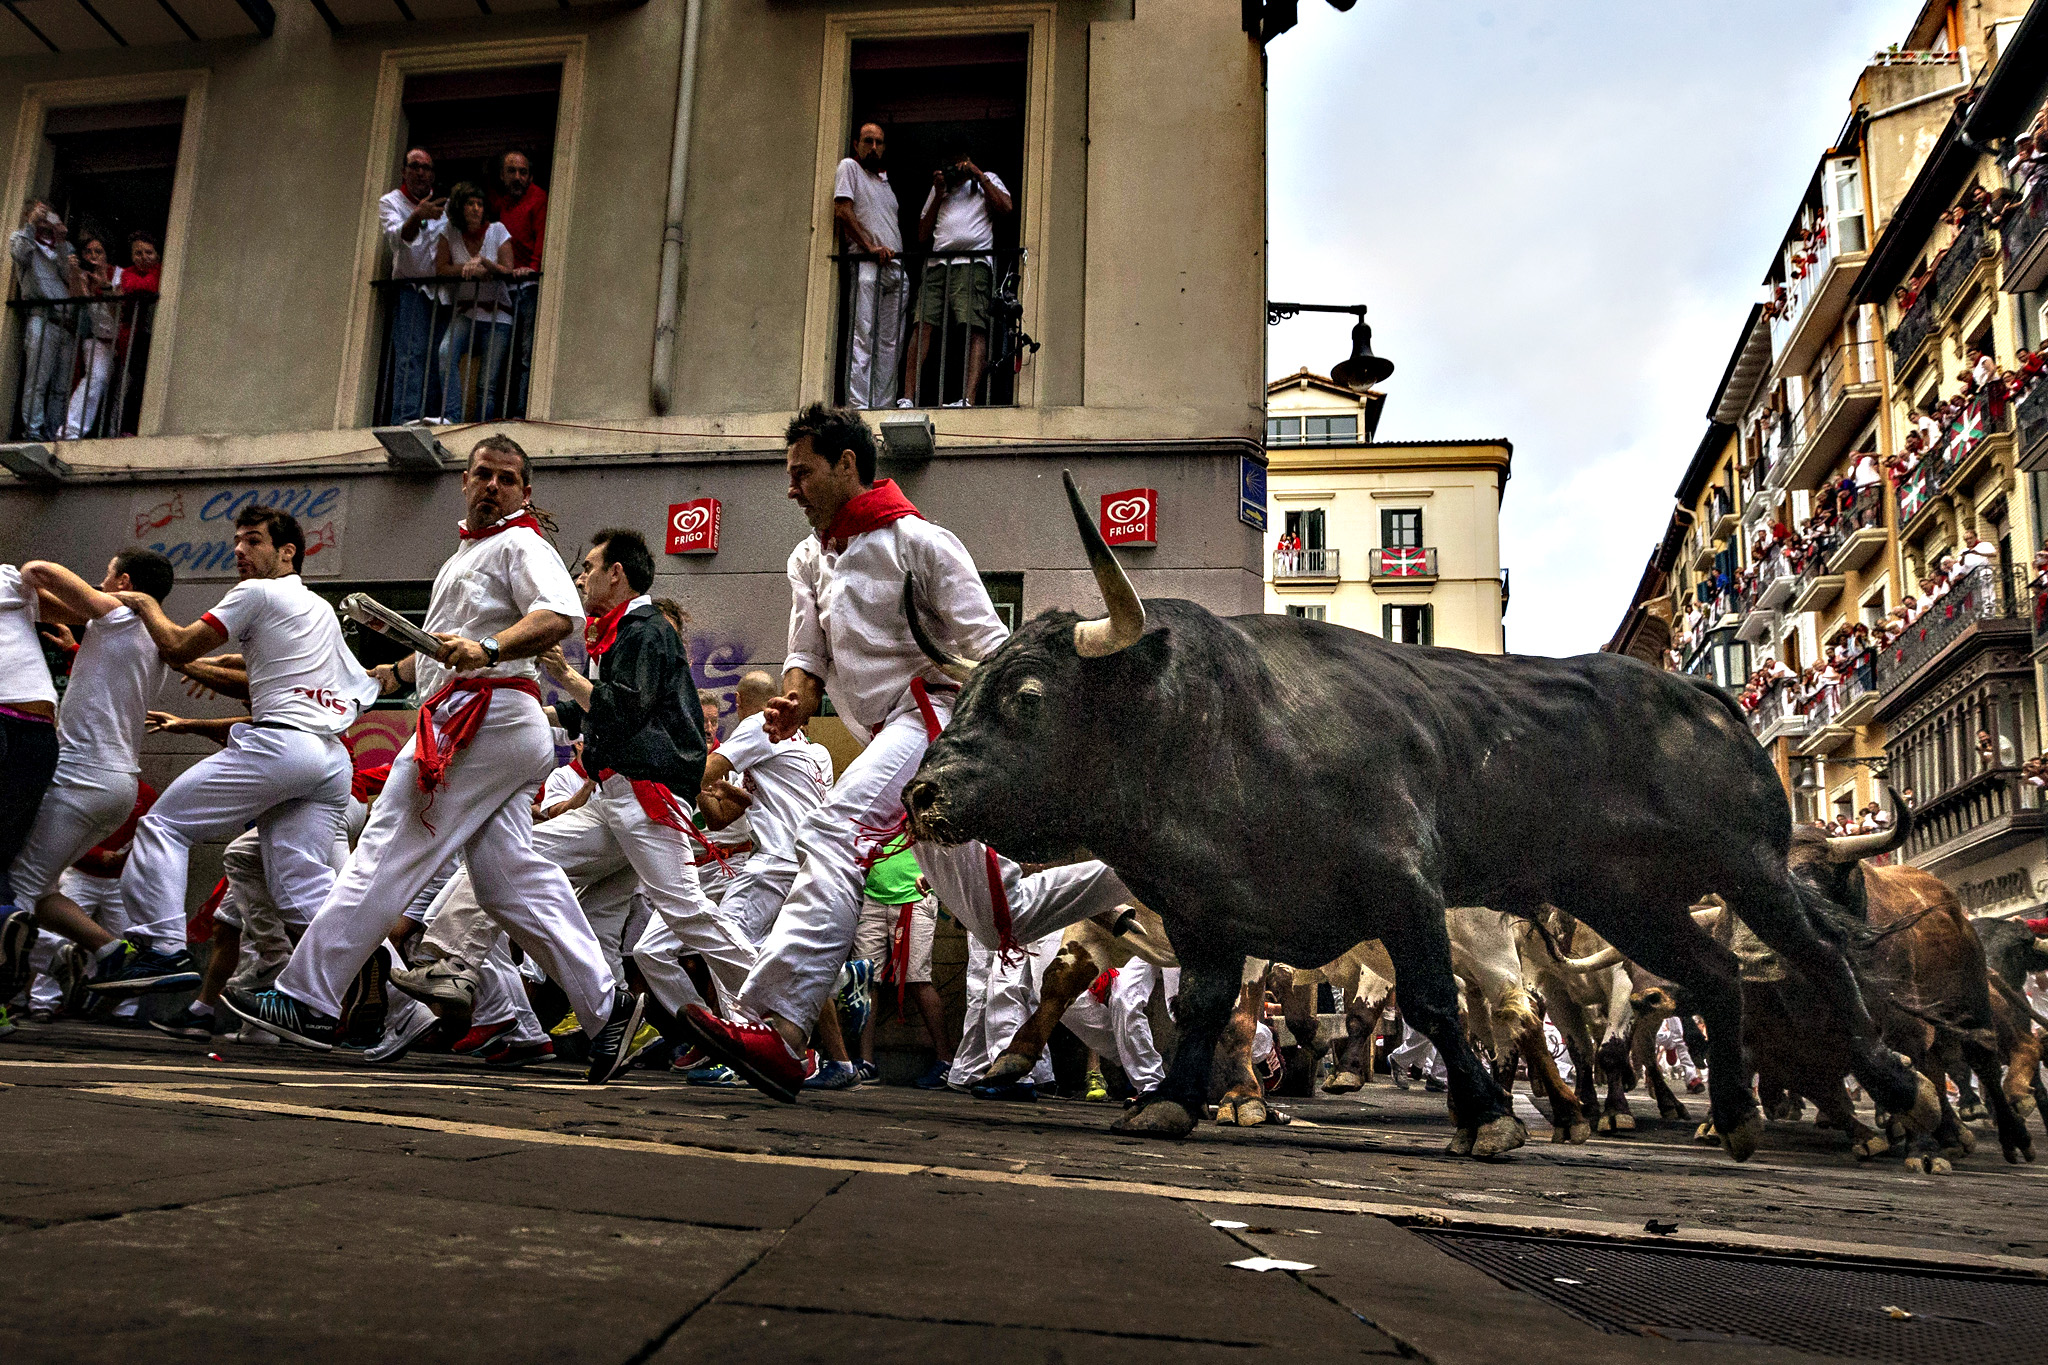 Revelers run chased by 'El Tajo y La Reina' ranch fighting bulls as they turn Estafeta corner during a running of the bulls of the San Fermin festival in Pamplona, Spain, Wednesday, July 8, 2015. Revelers from around the world arrive in Pamplona every year to take part on some of the eight days of the running of the bulls